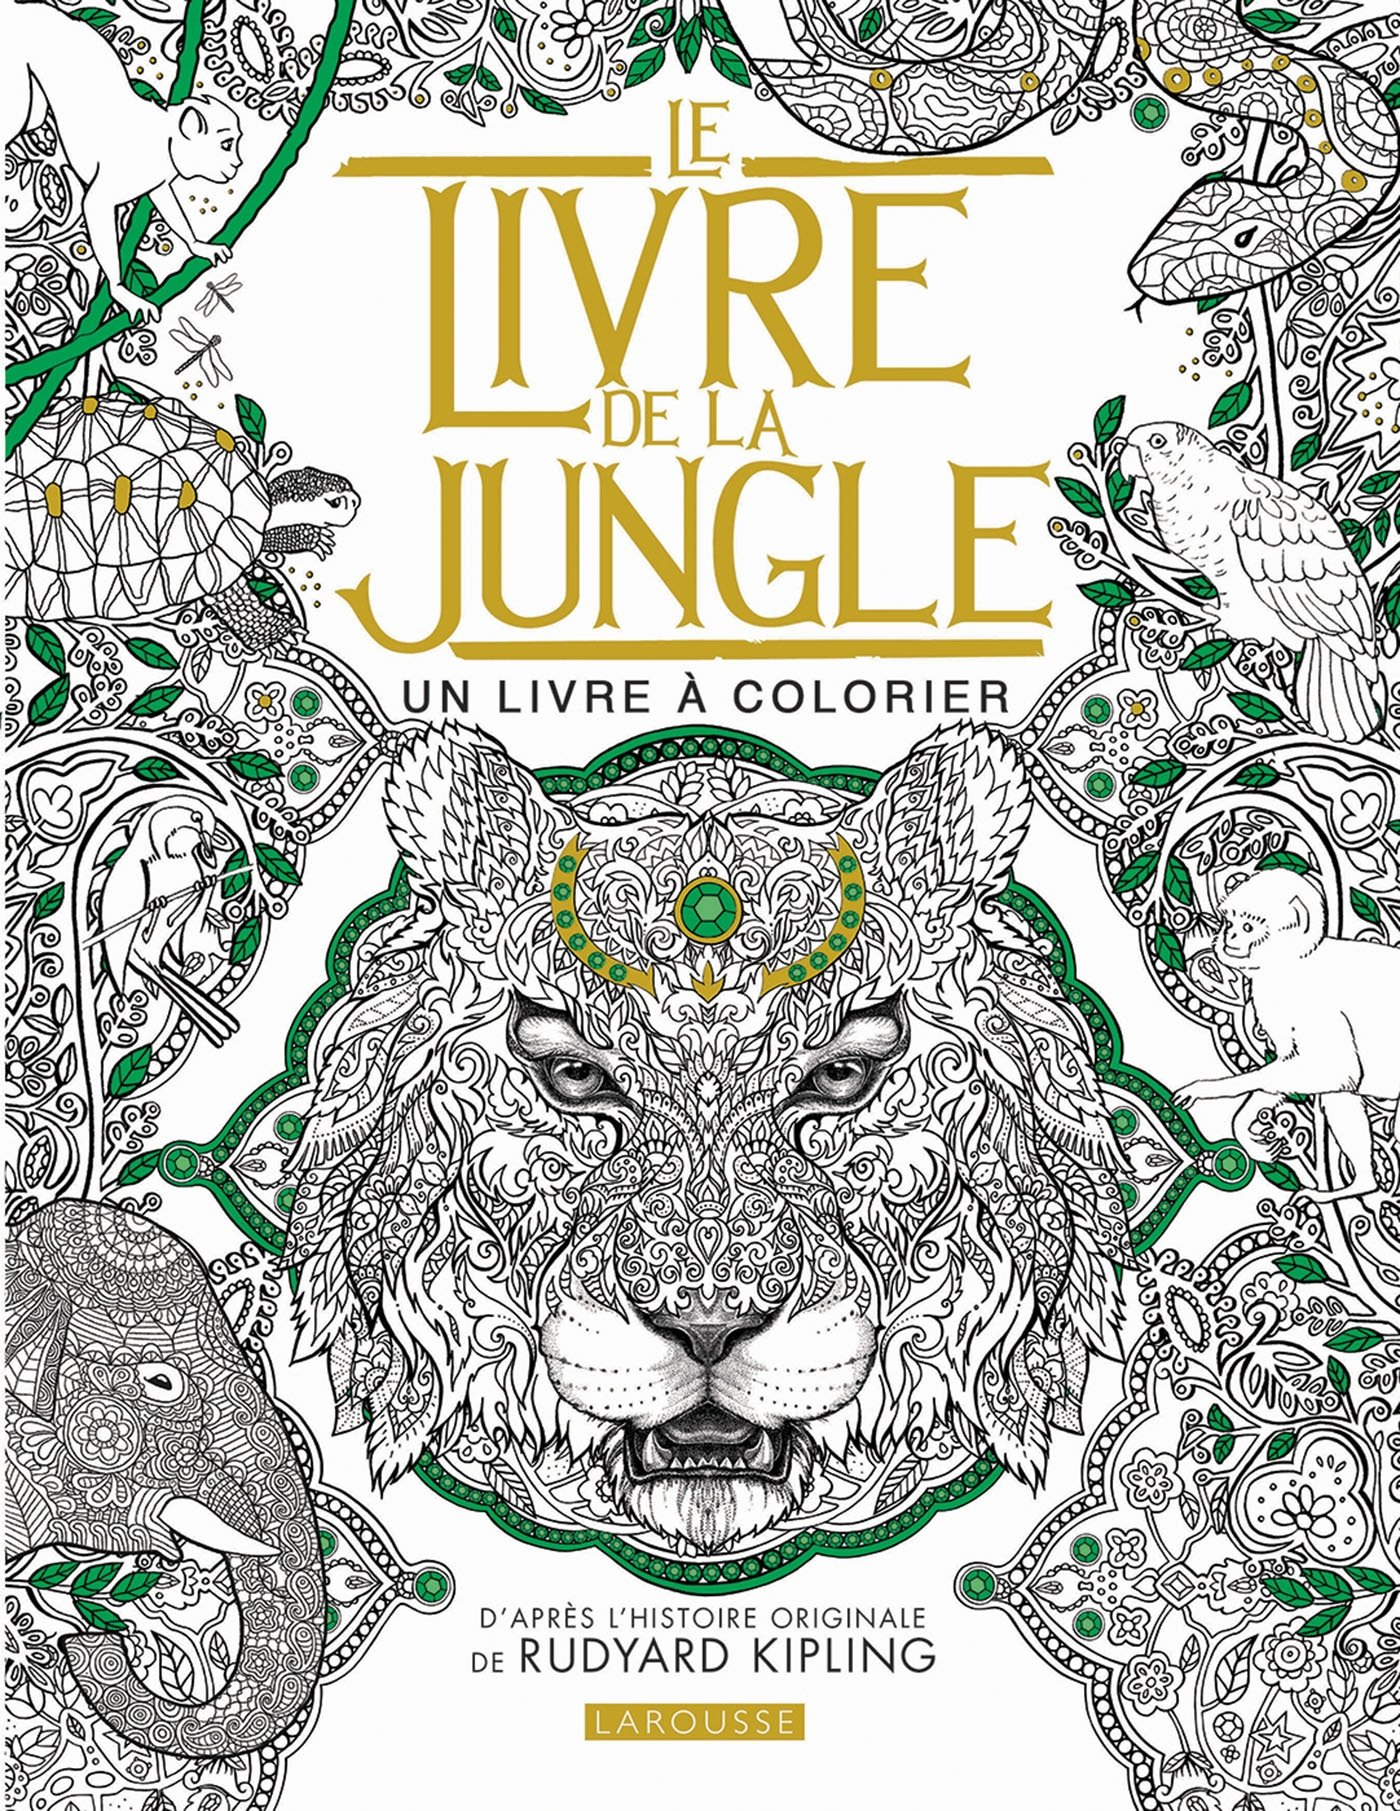 Livredelajungle